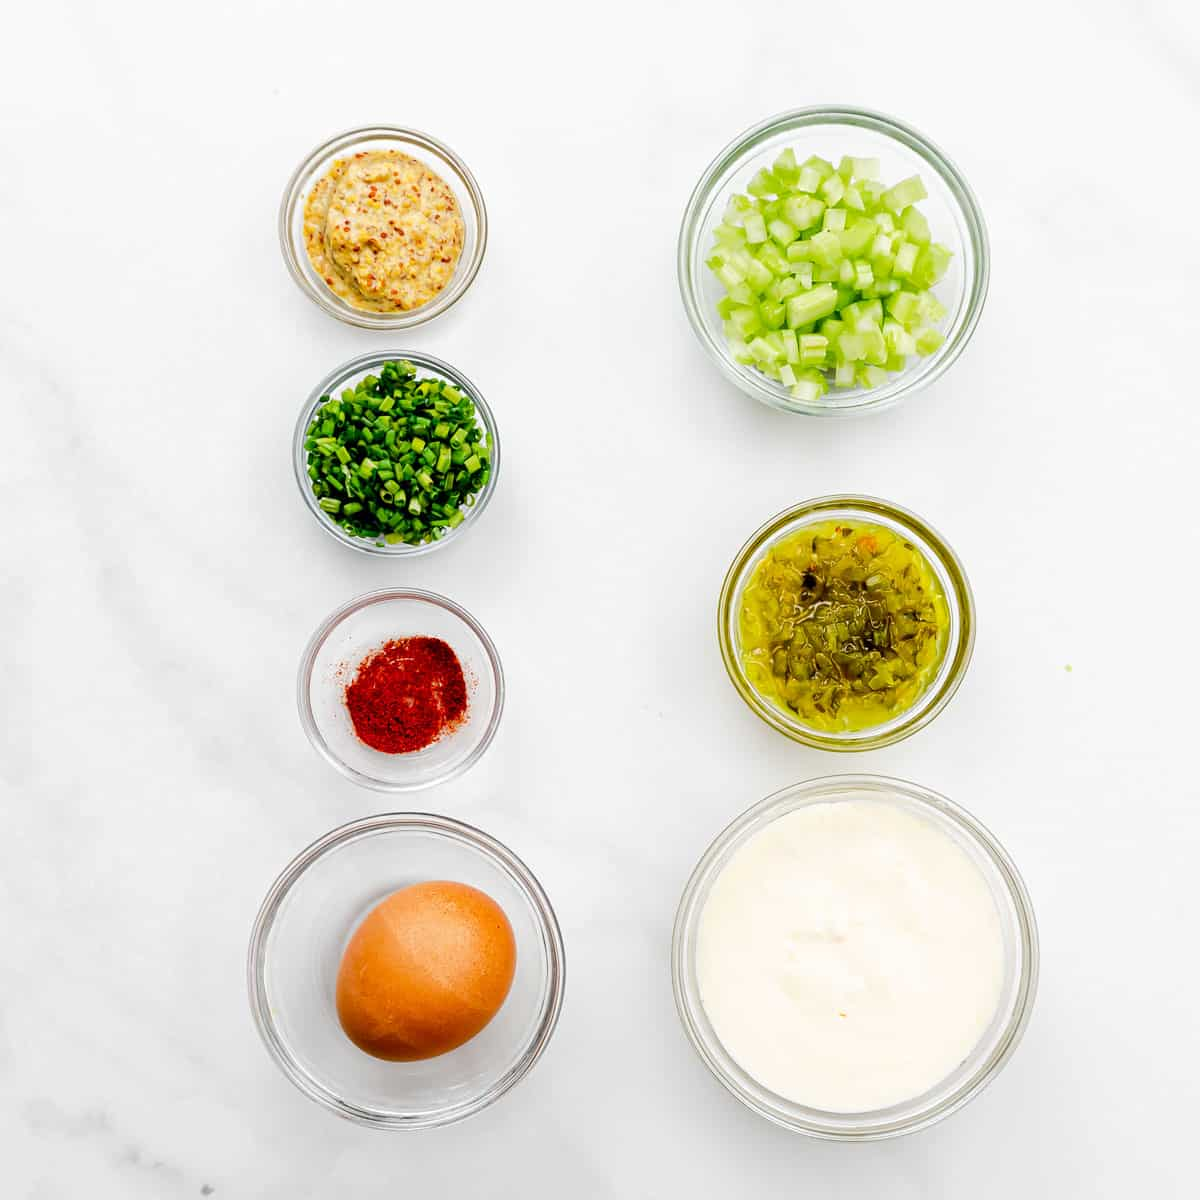 The ingredients for egg salad.